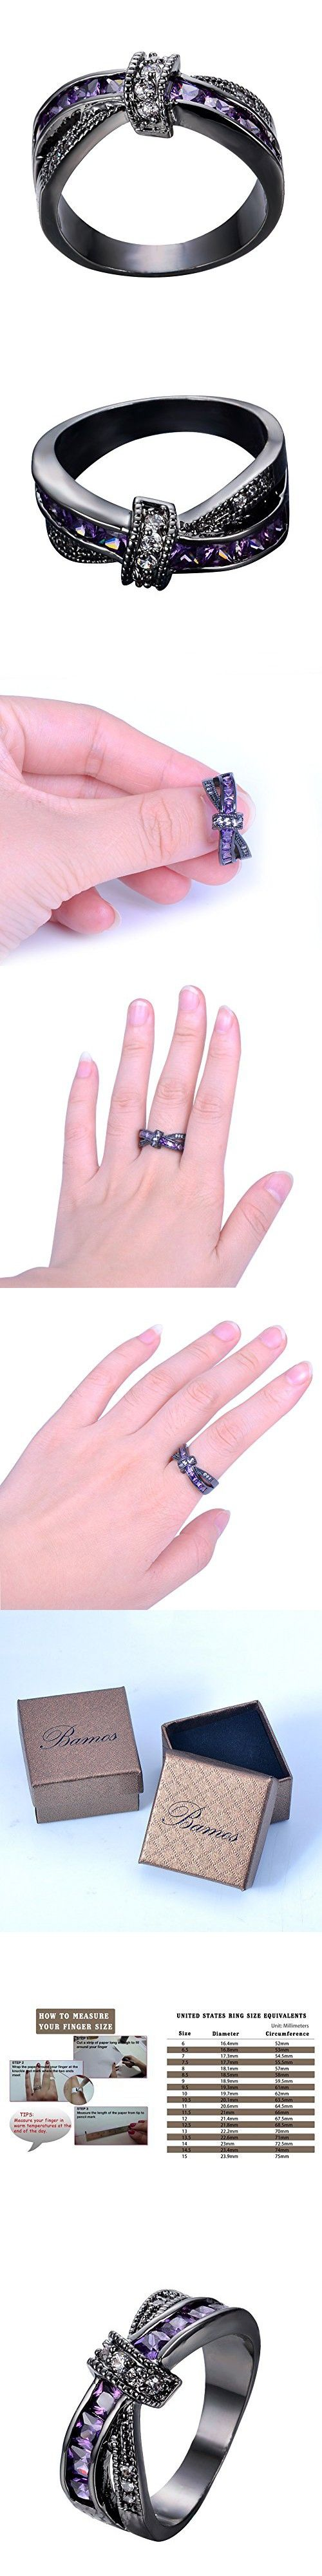 Unique Black and Purple Wedding Rings Cheap | Wedding